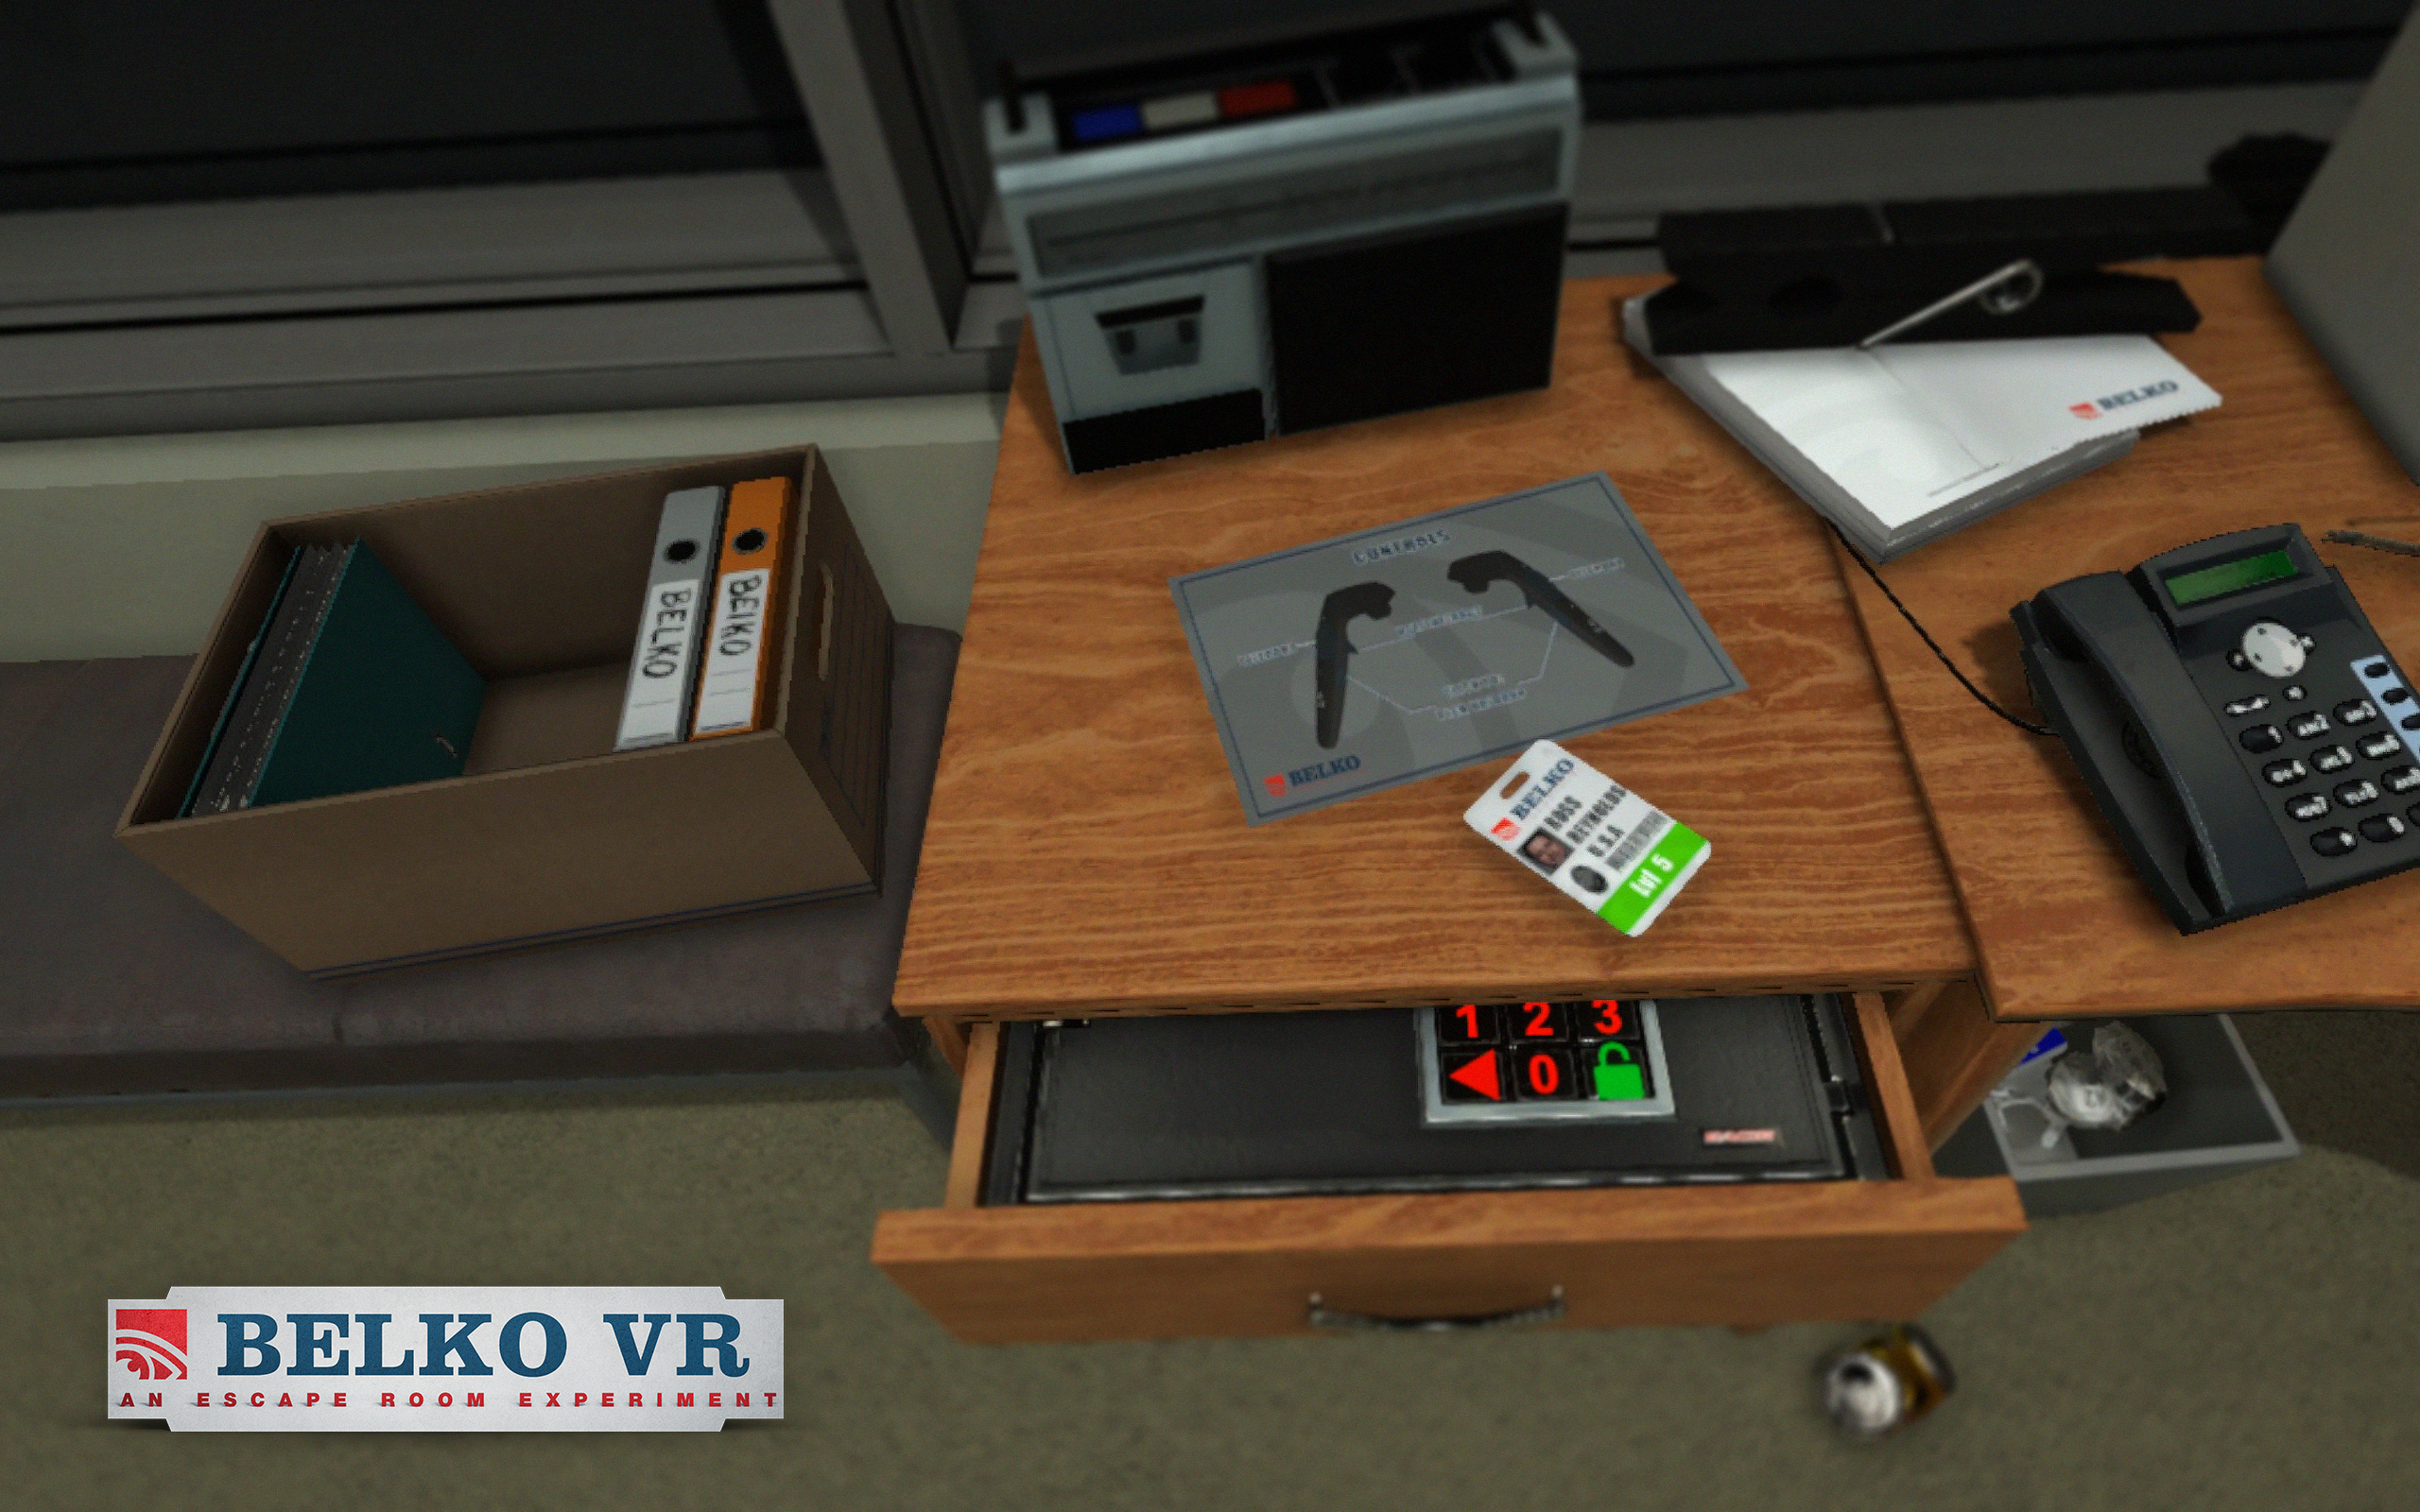 Belko VR: An Escape Room Room Experiment